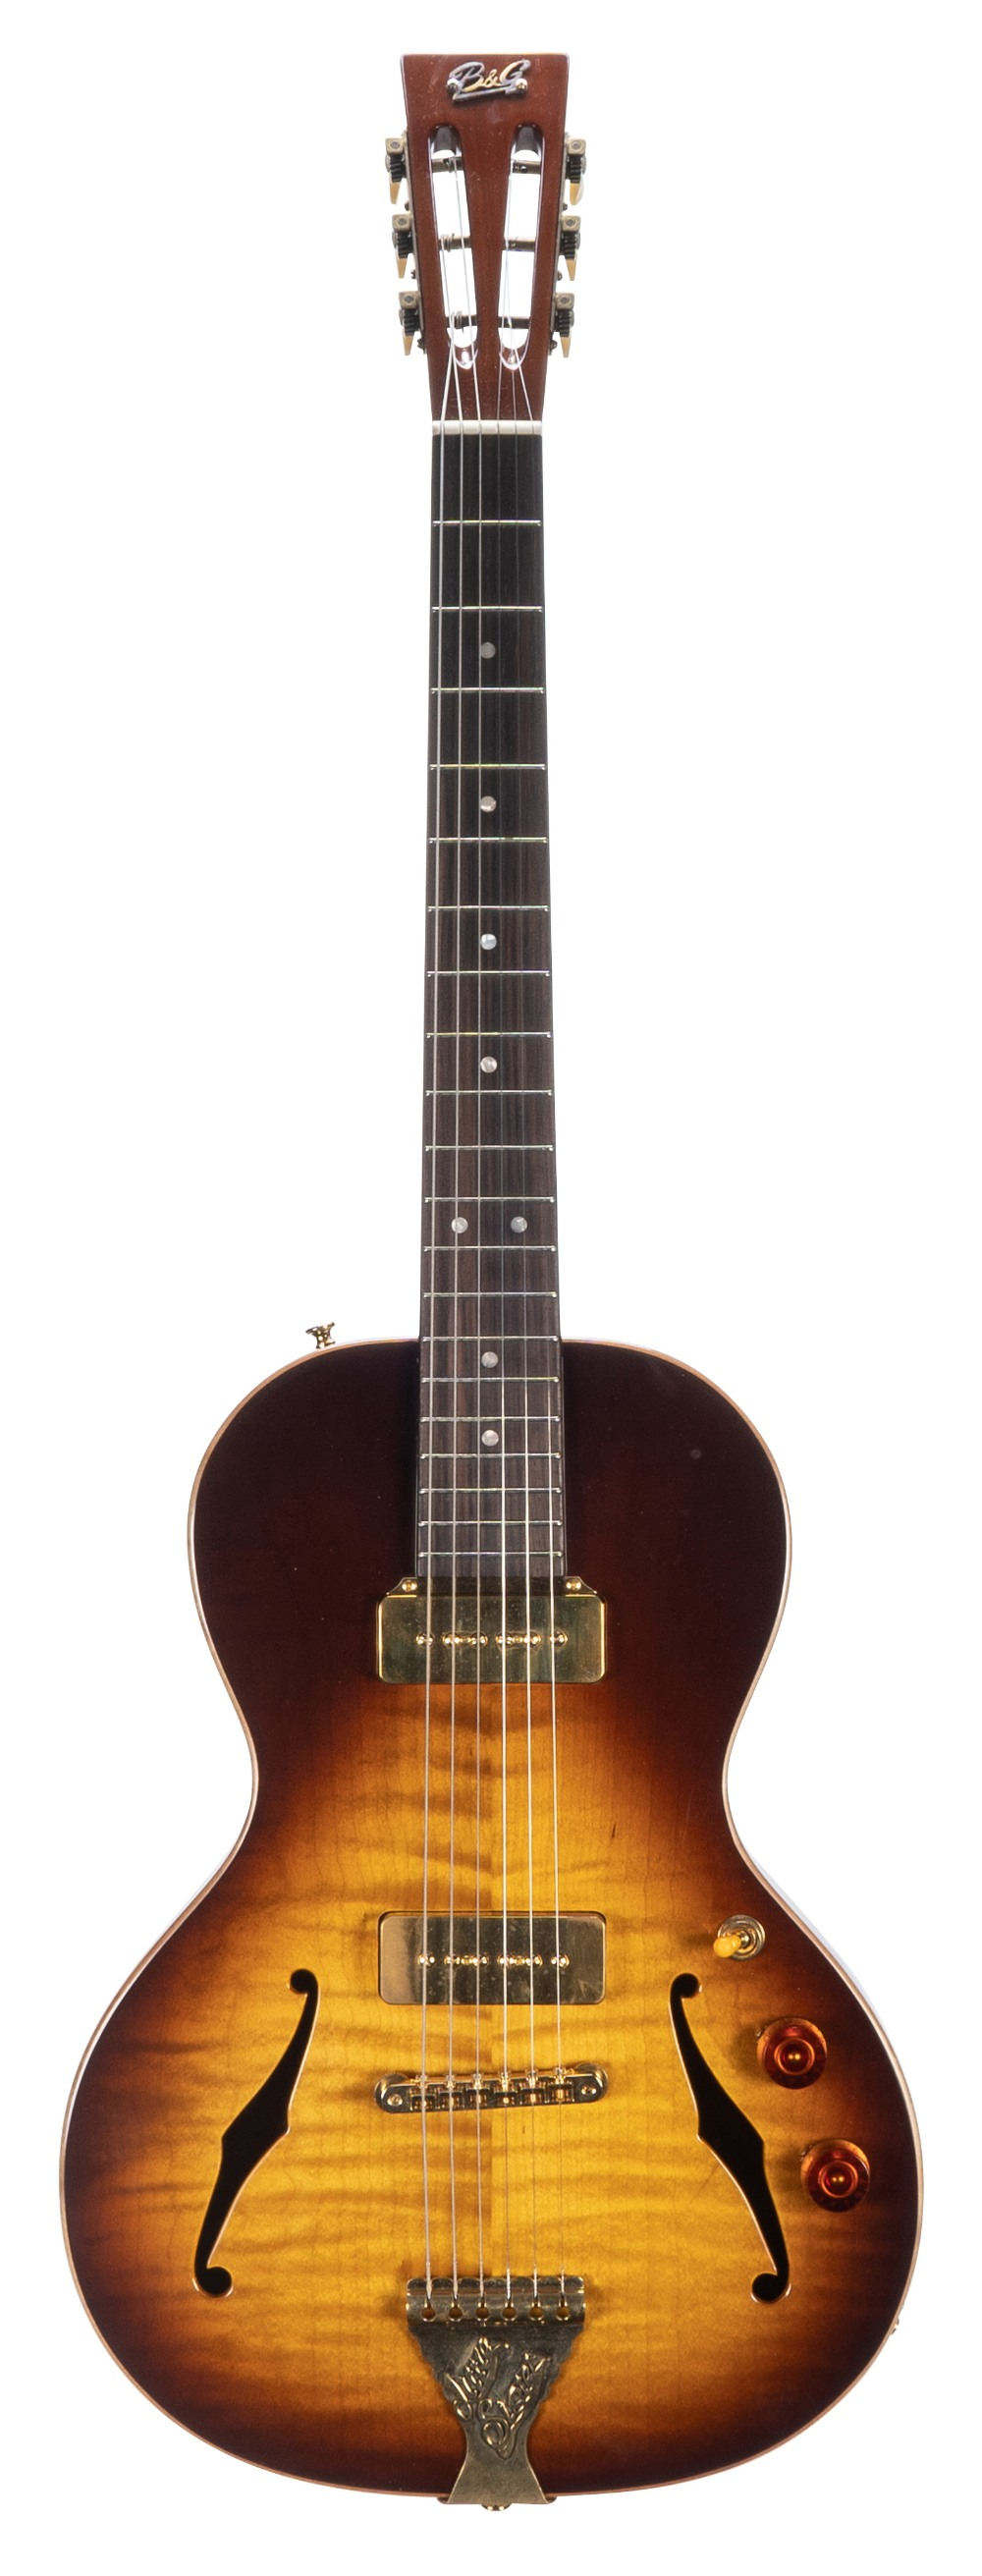 Lot 2 - 2017 B & G Little Sister Crossroads semi hollow body electric guitar, made in China, ser. no.